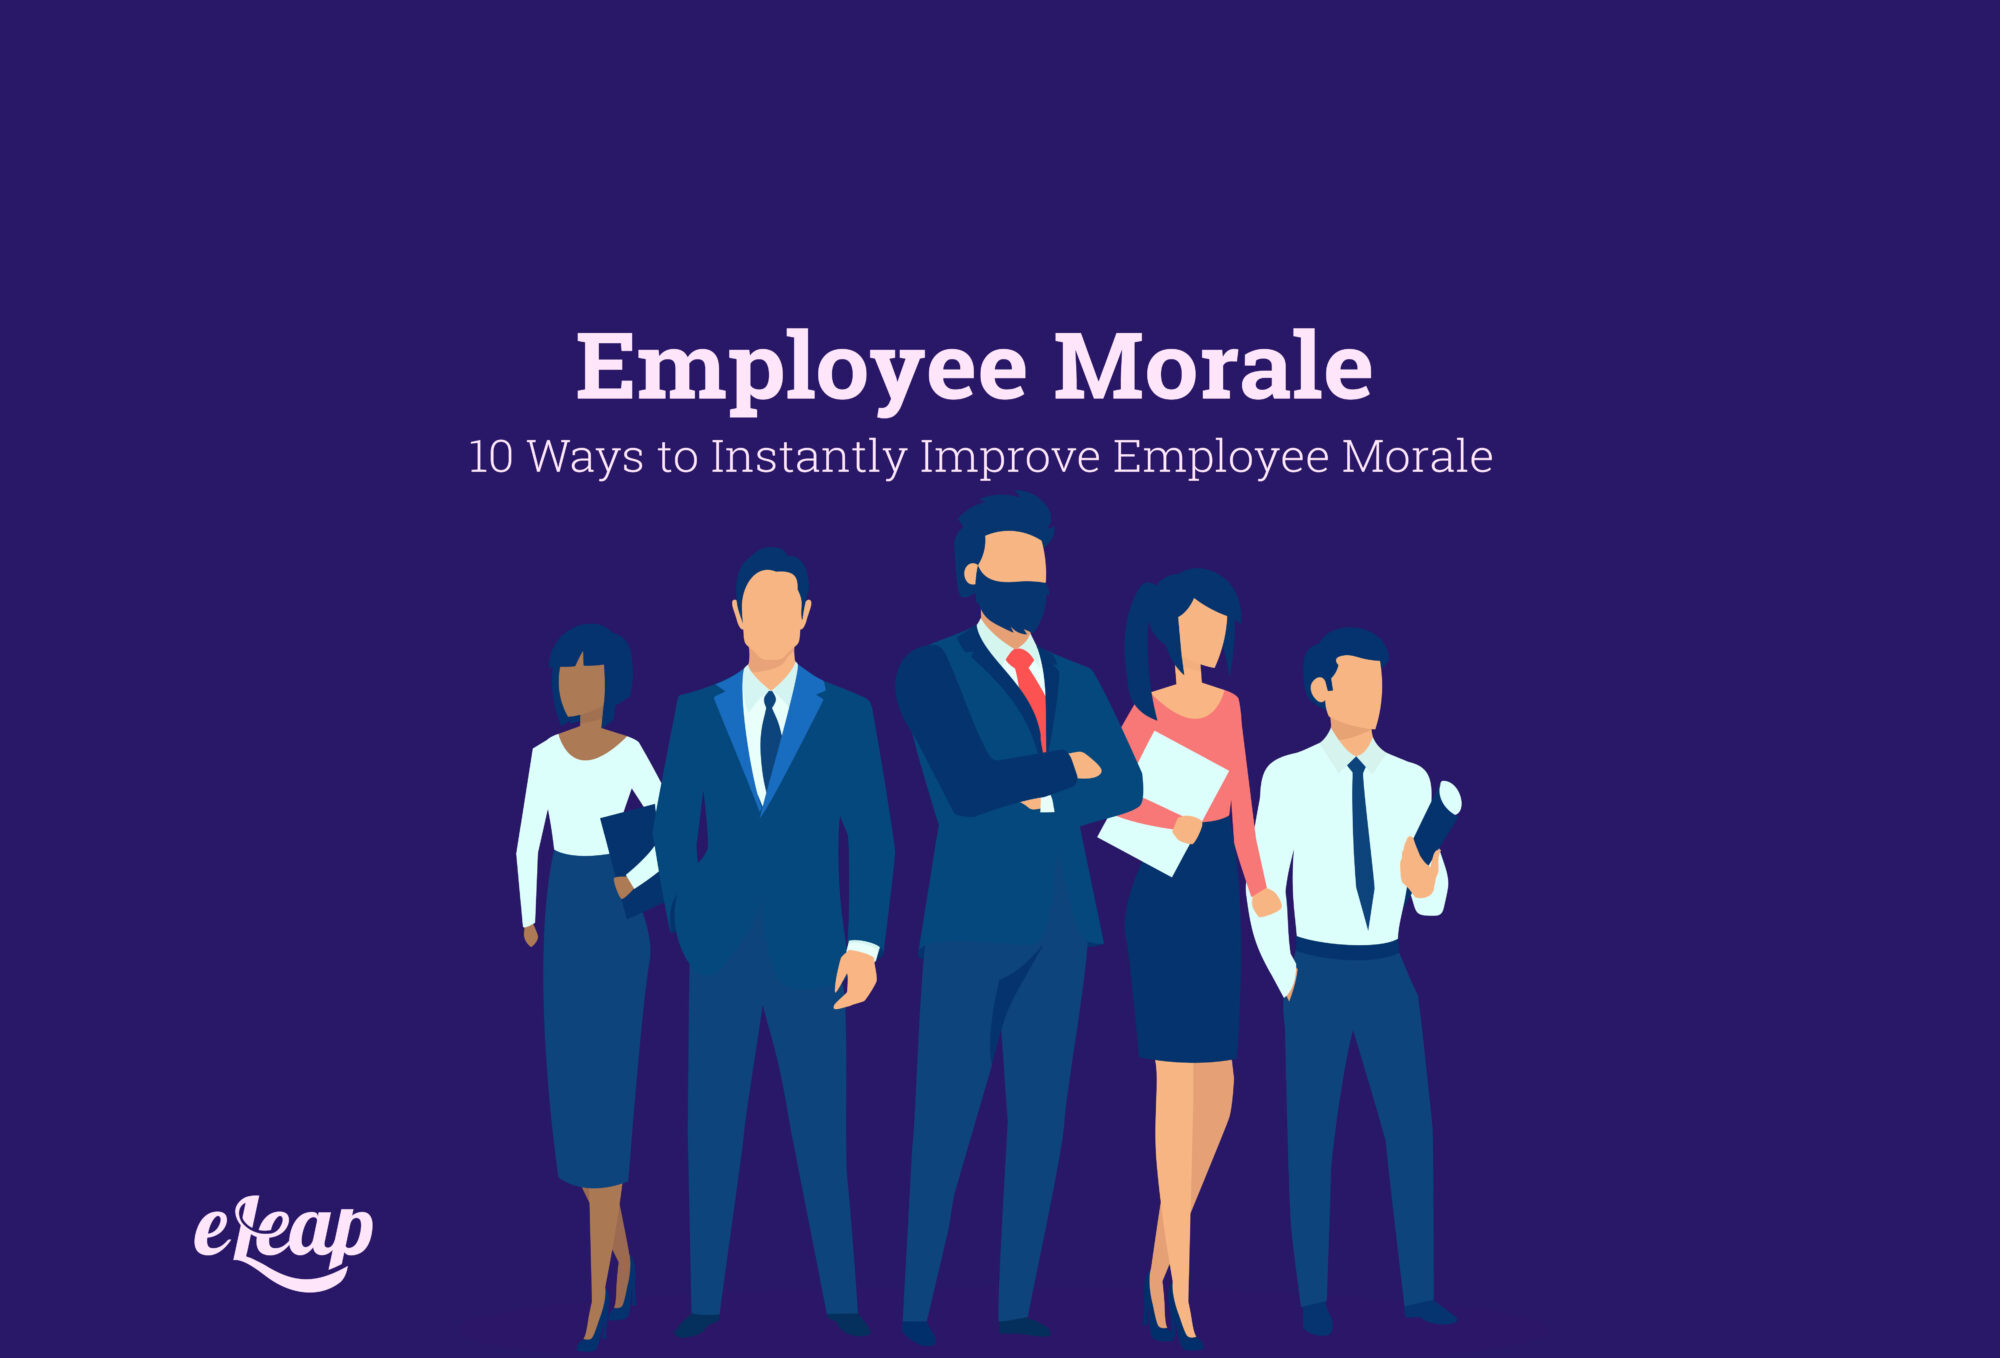 10 Ways to Instantly Improve Employee Morale